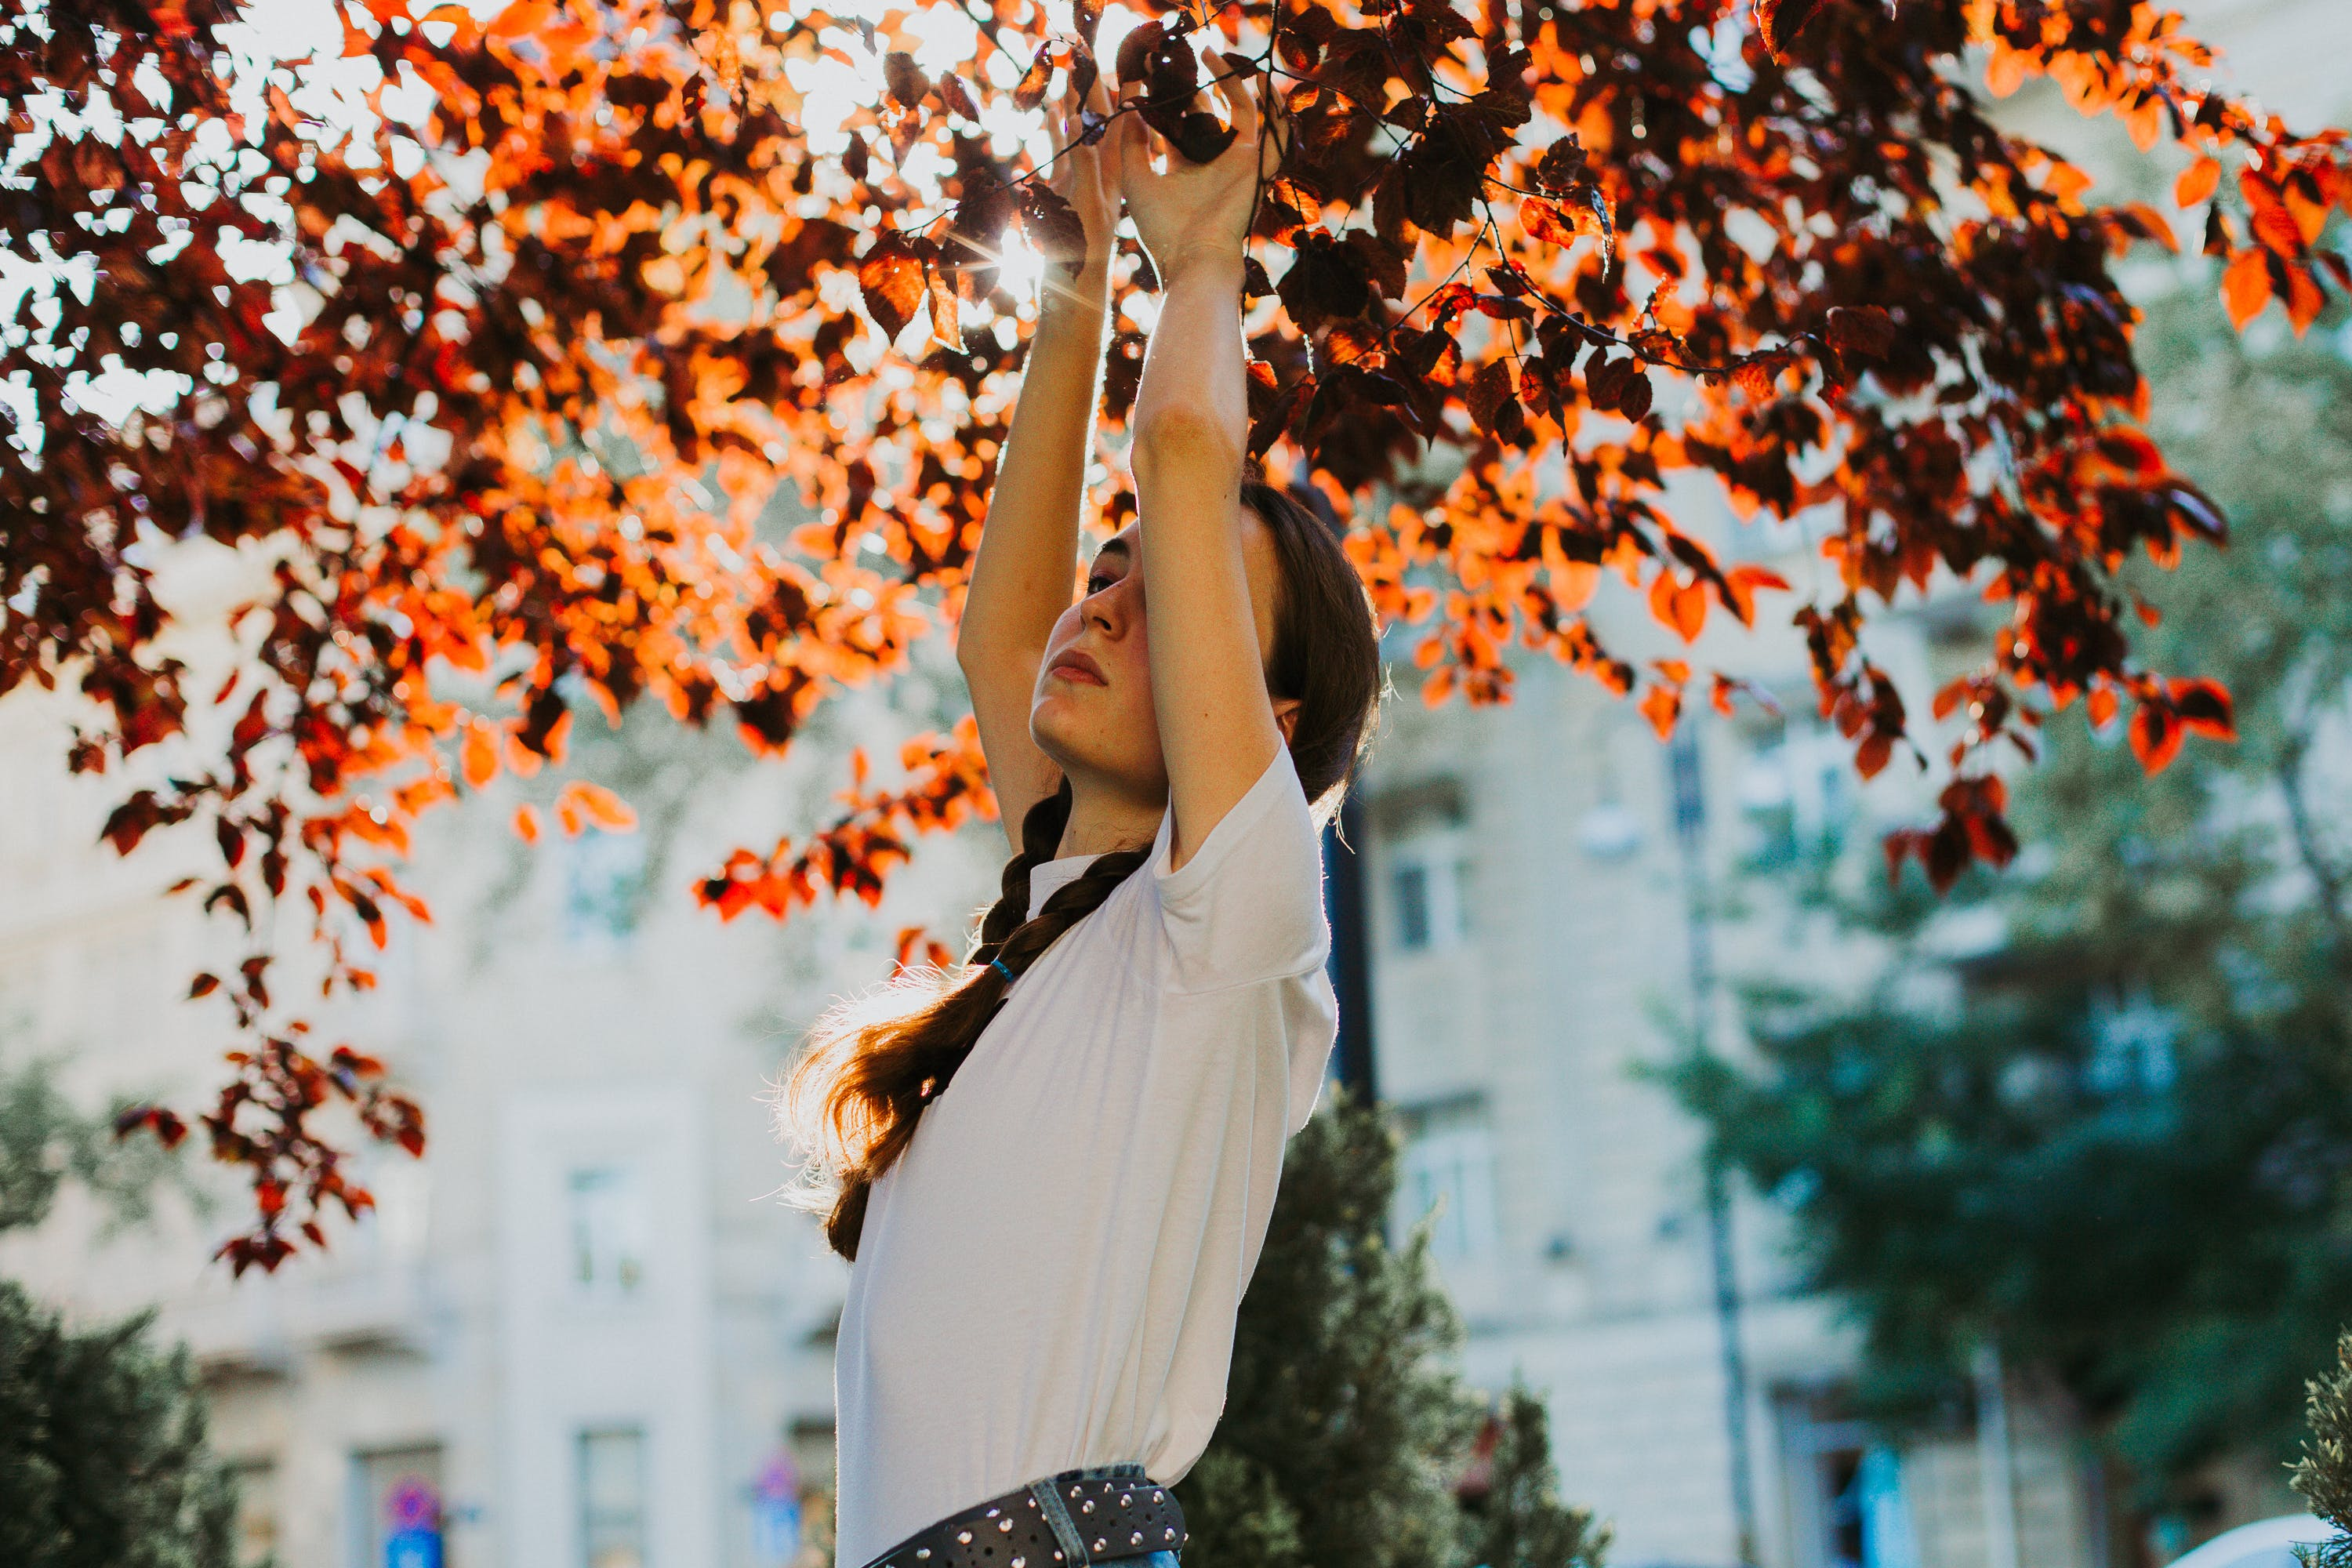 Selective Photo of Woman Raising Her Hands Underneath Tree